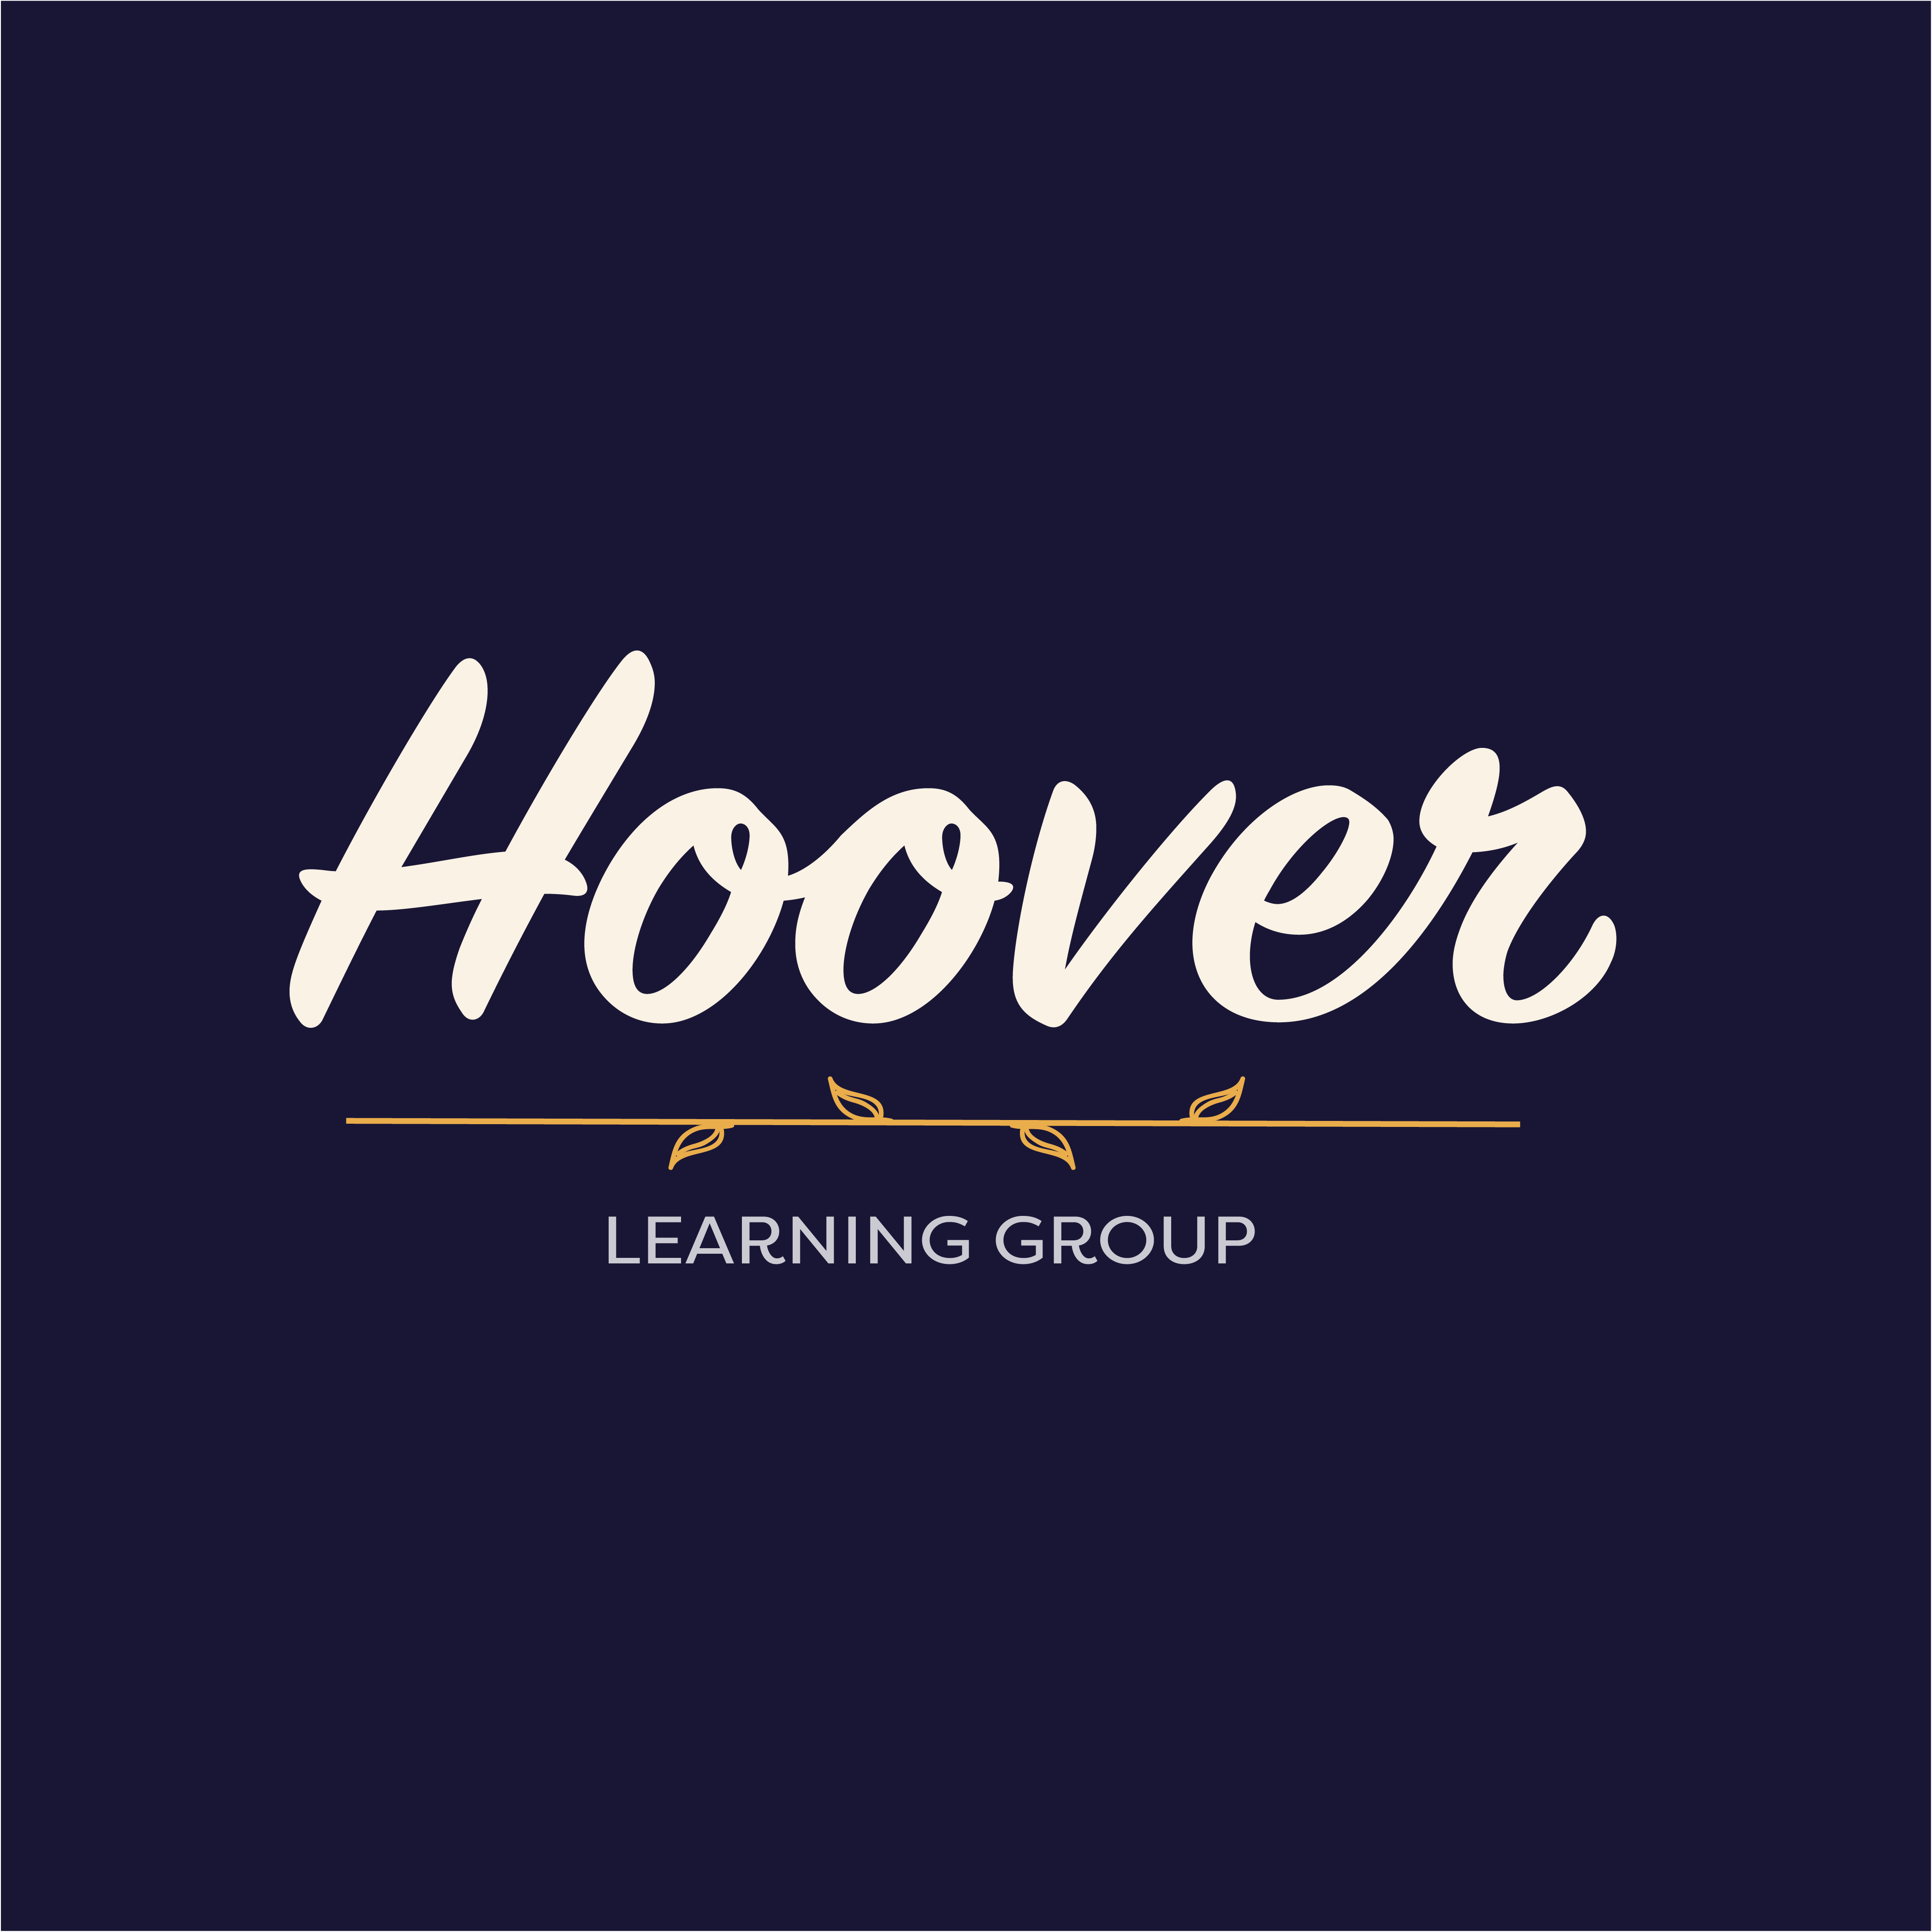 Hoover Learning Group